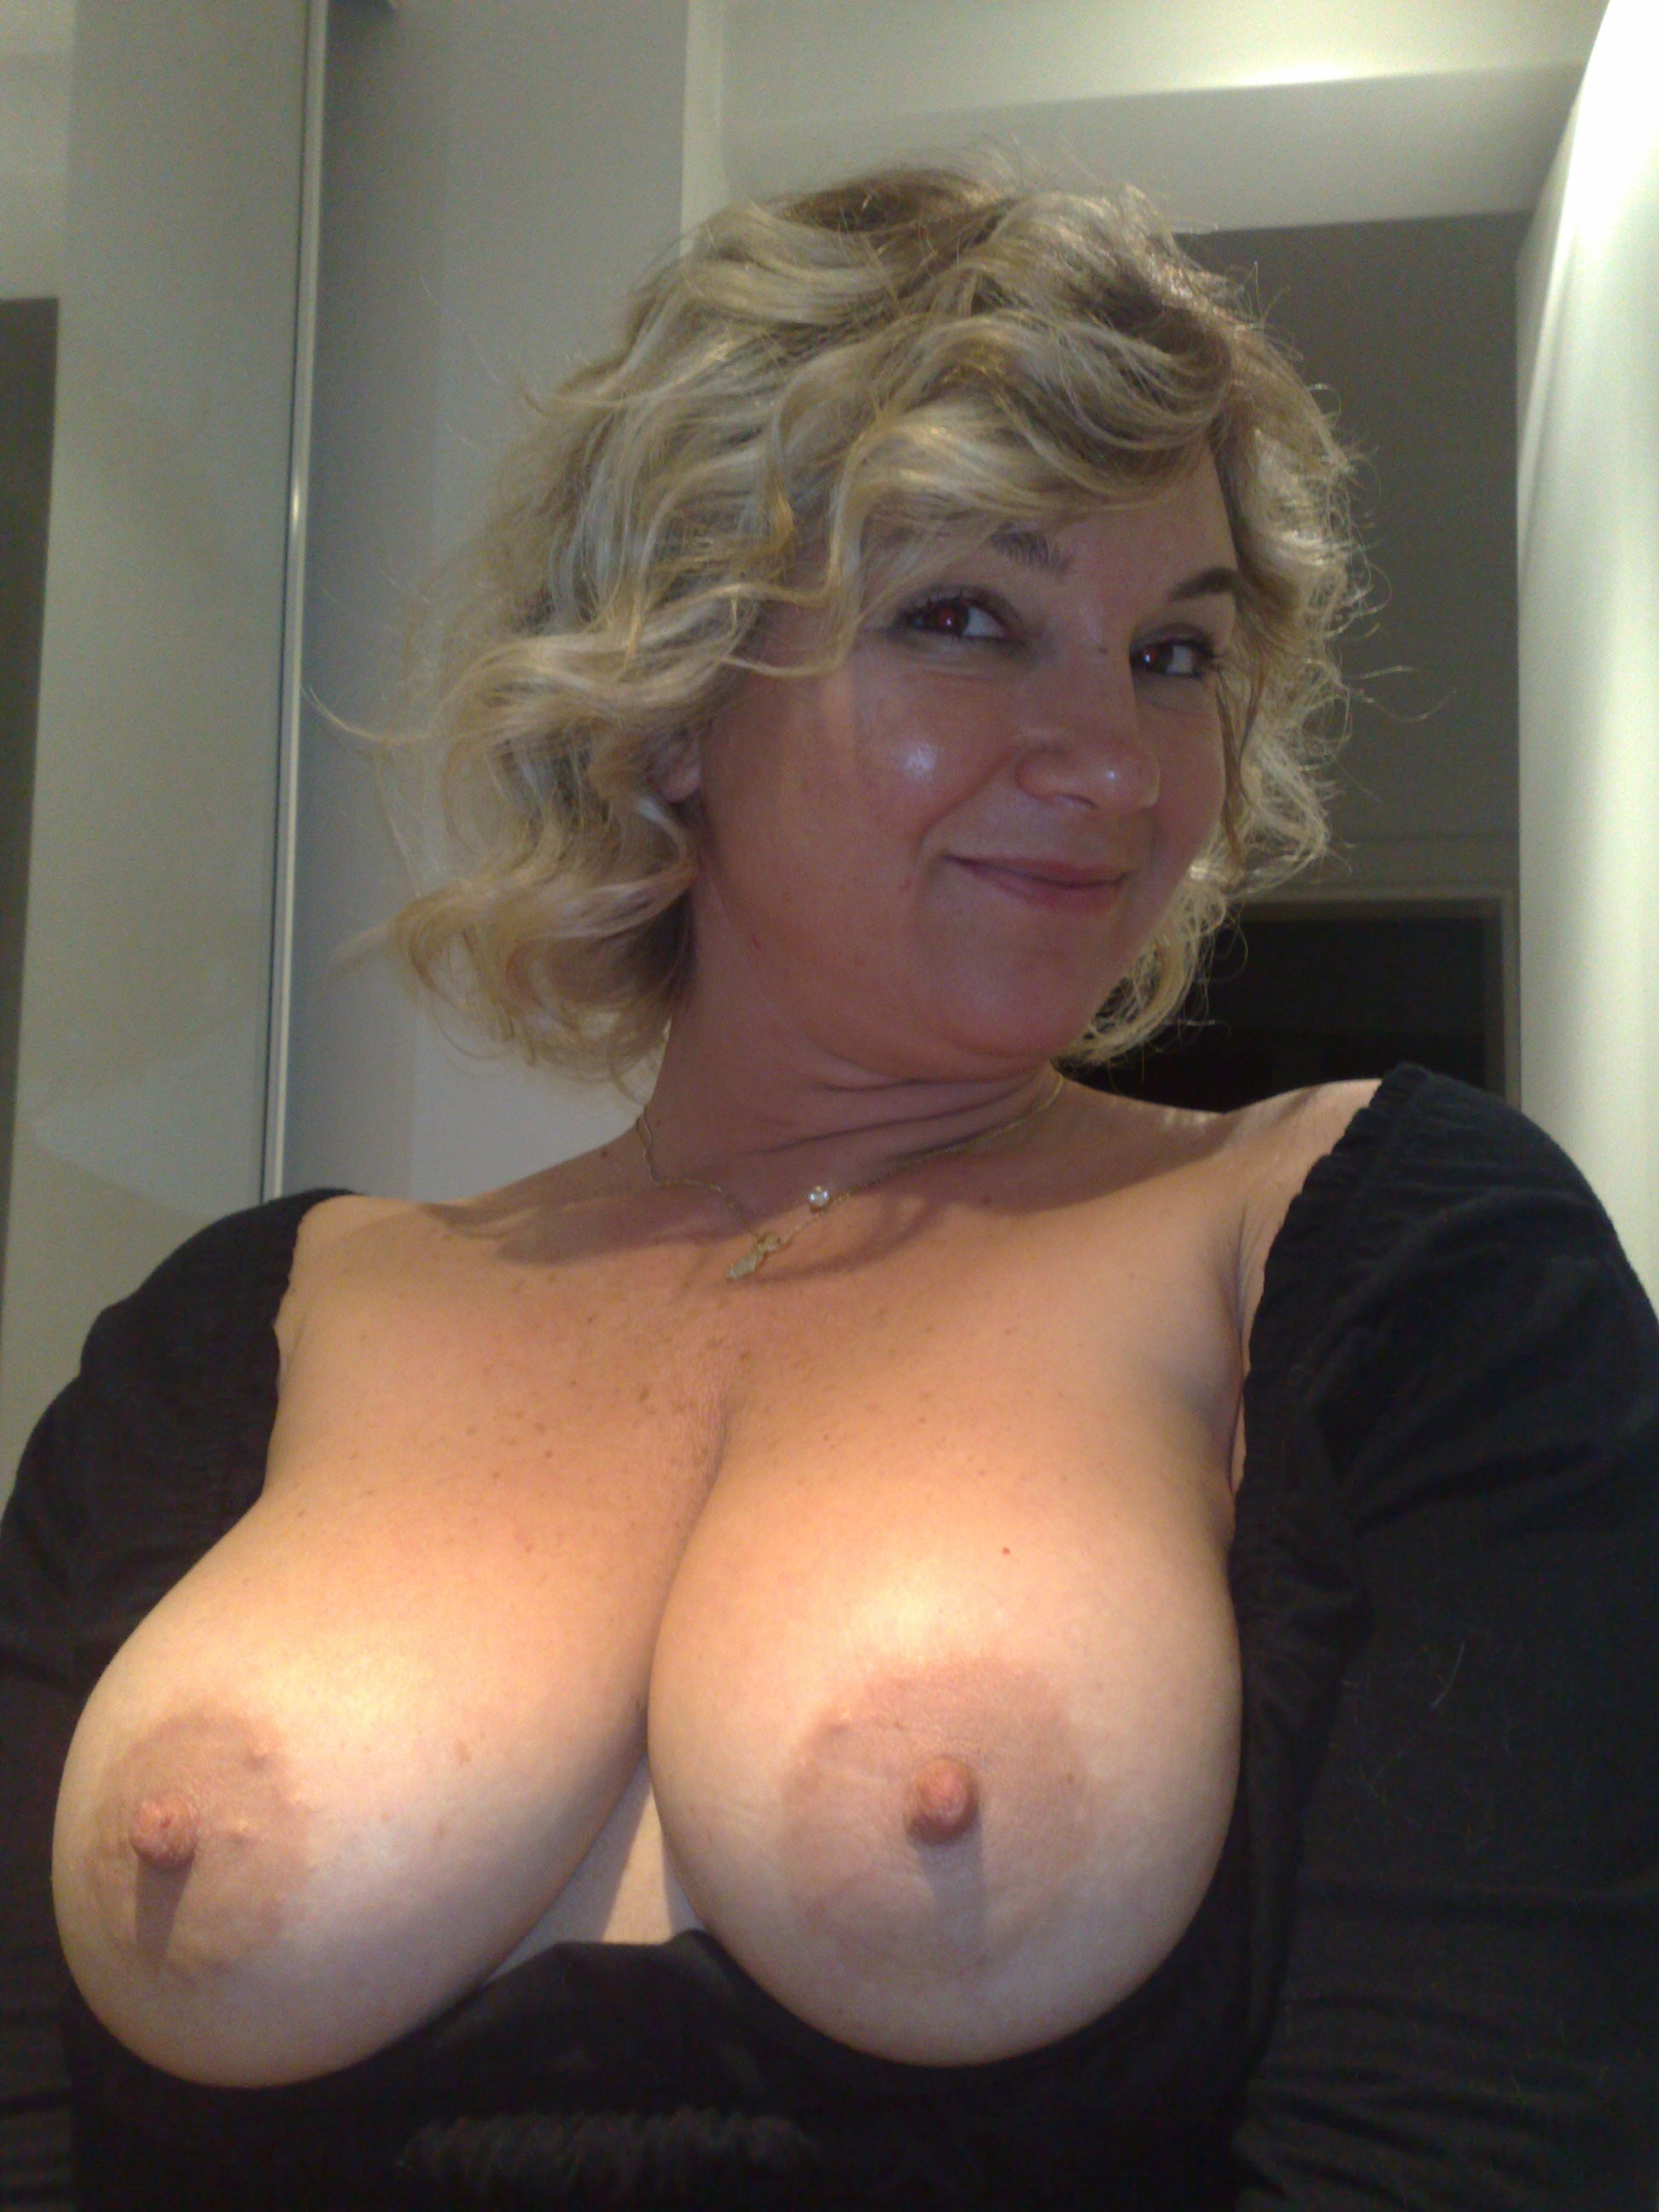 Hot nude moms self photos speaking, opinion